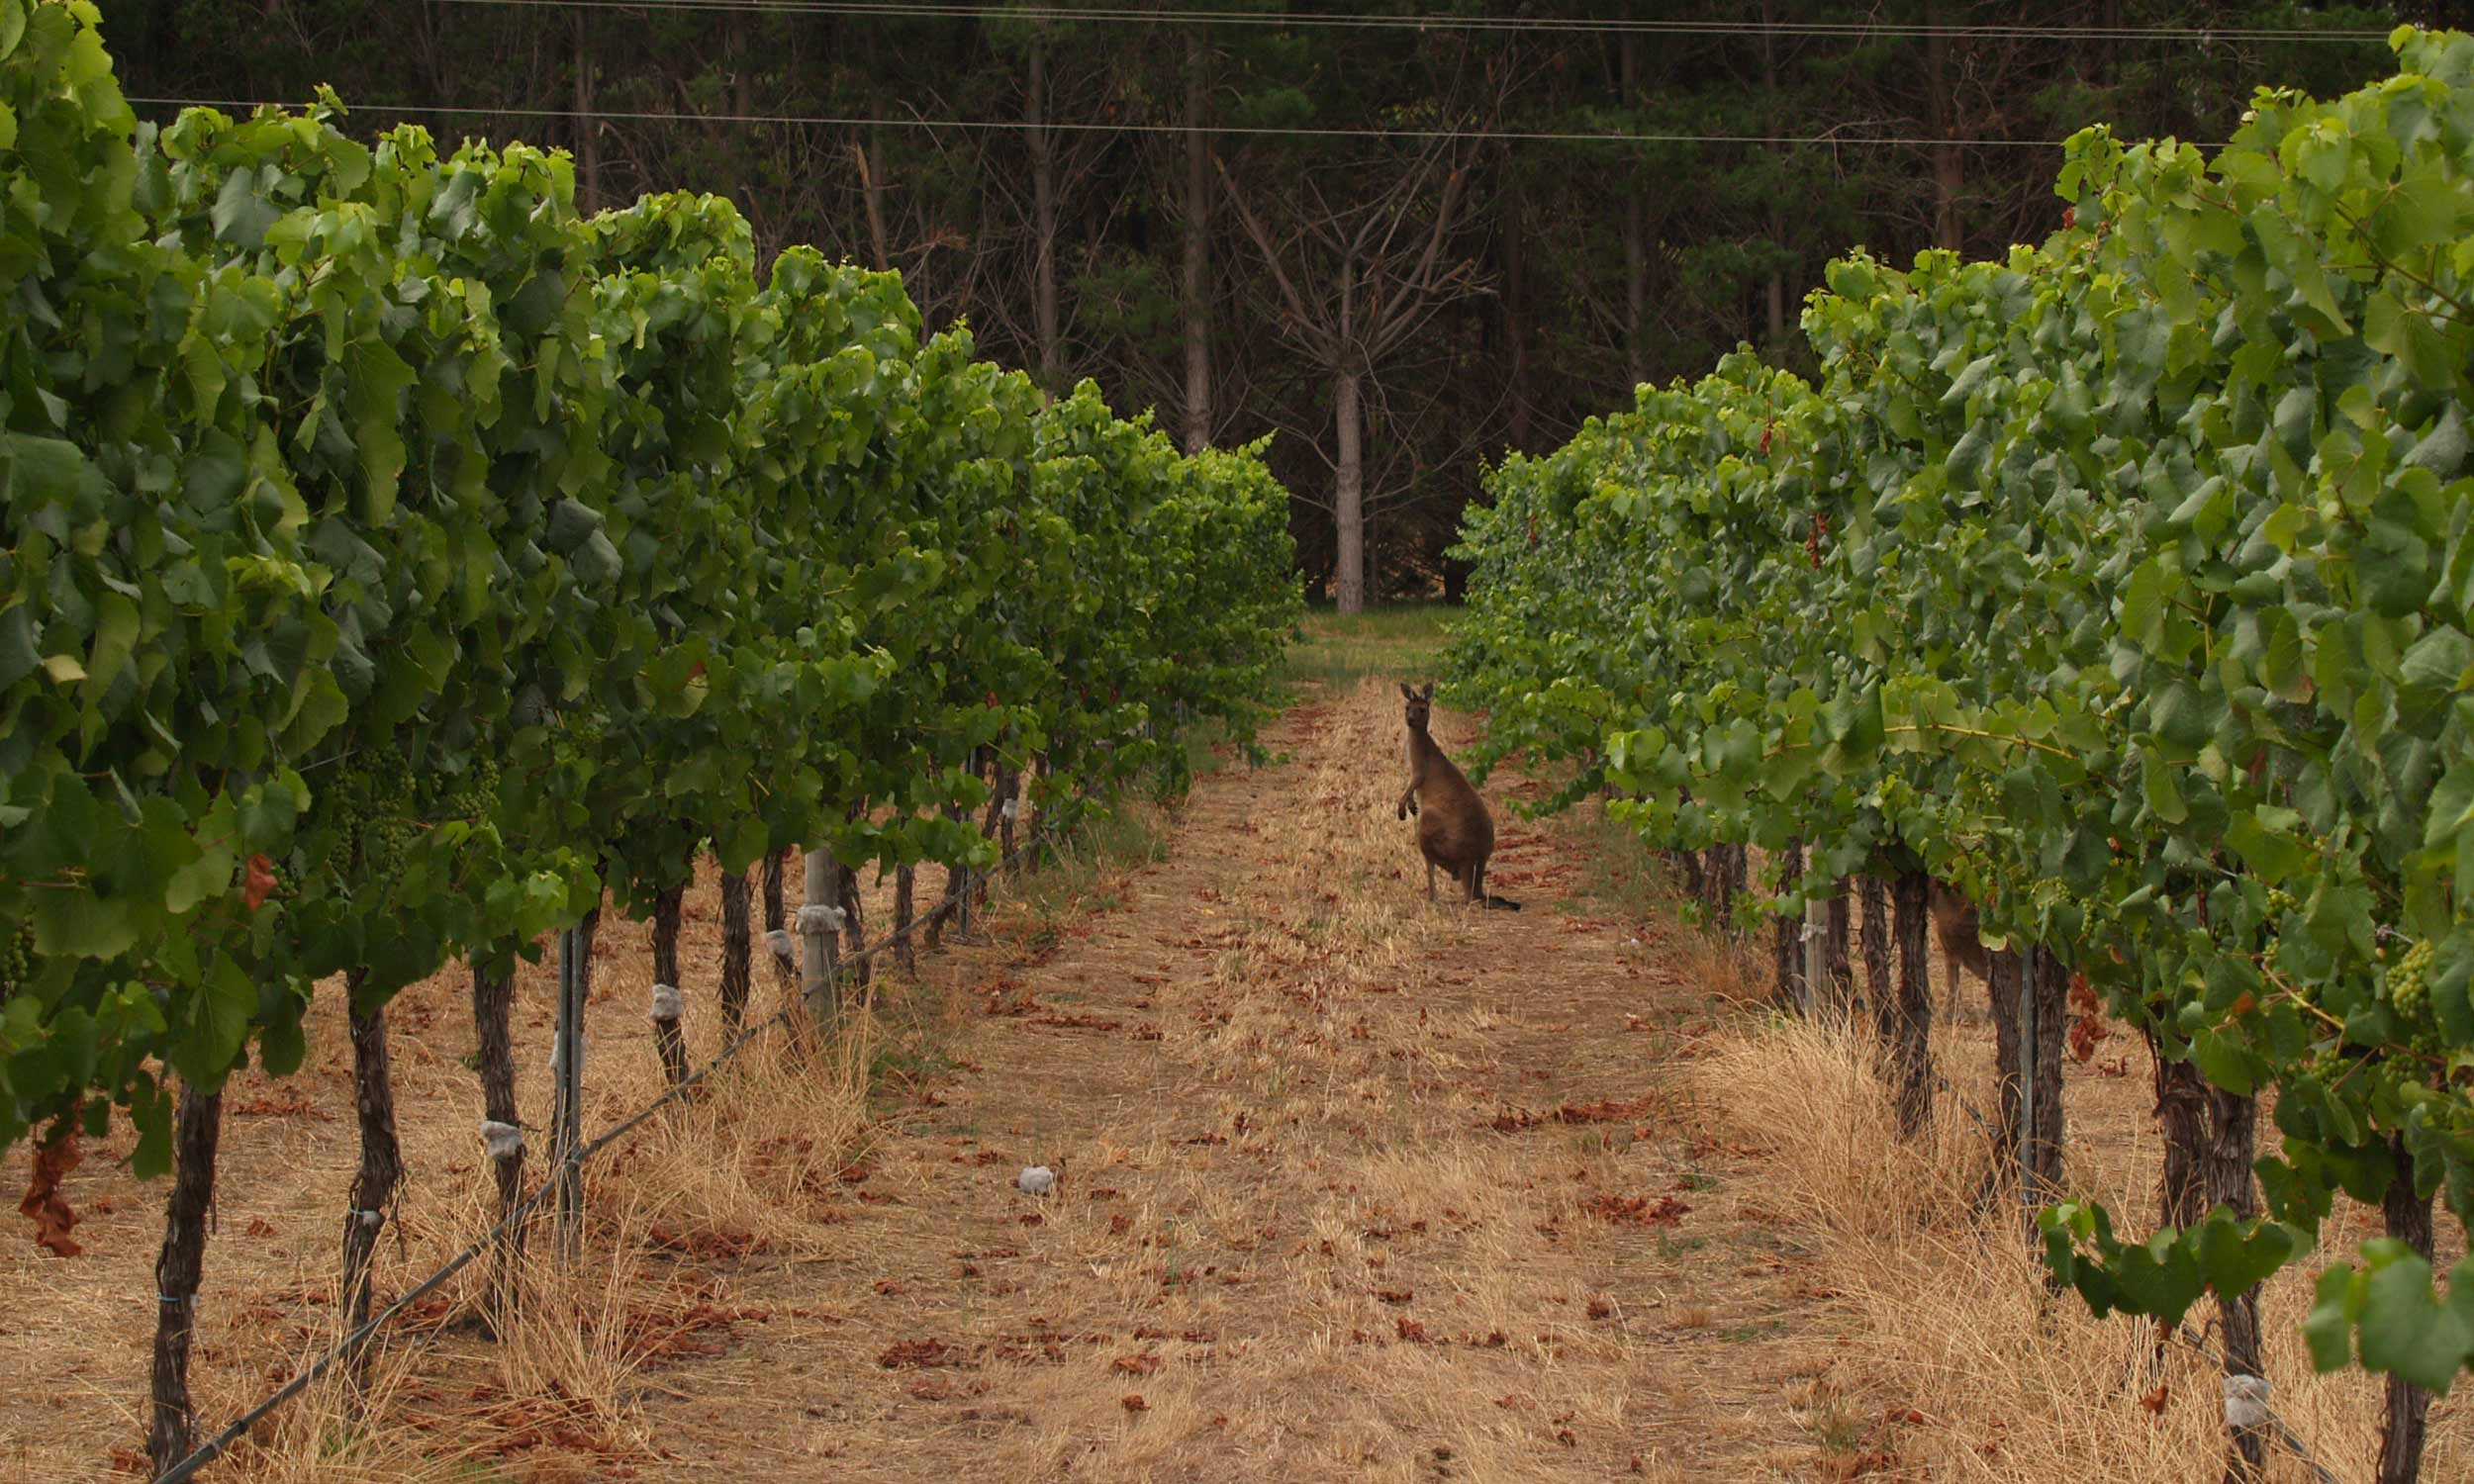 Kangaroo in Vines, Margaret River